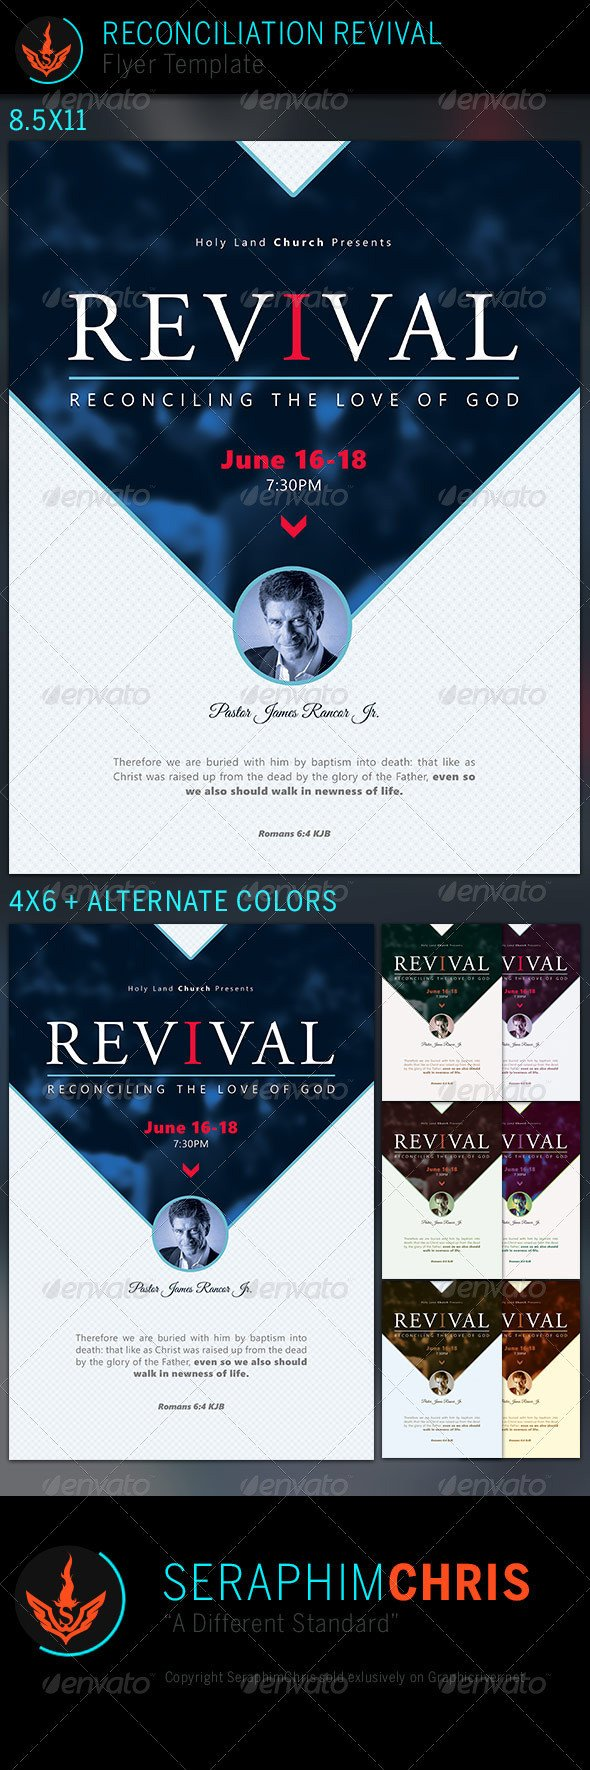 Free Church Revival Flyer Template Reconciliation Revival Church Flyer Template by